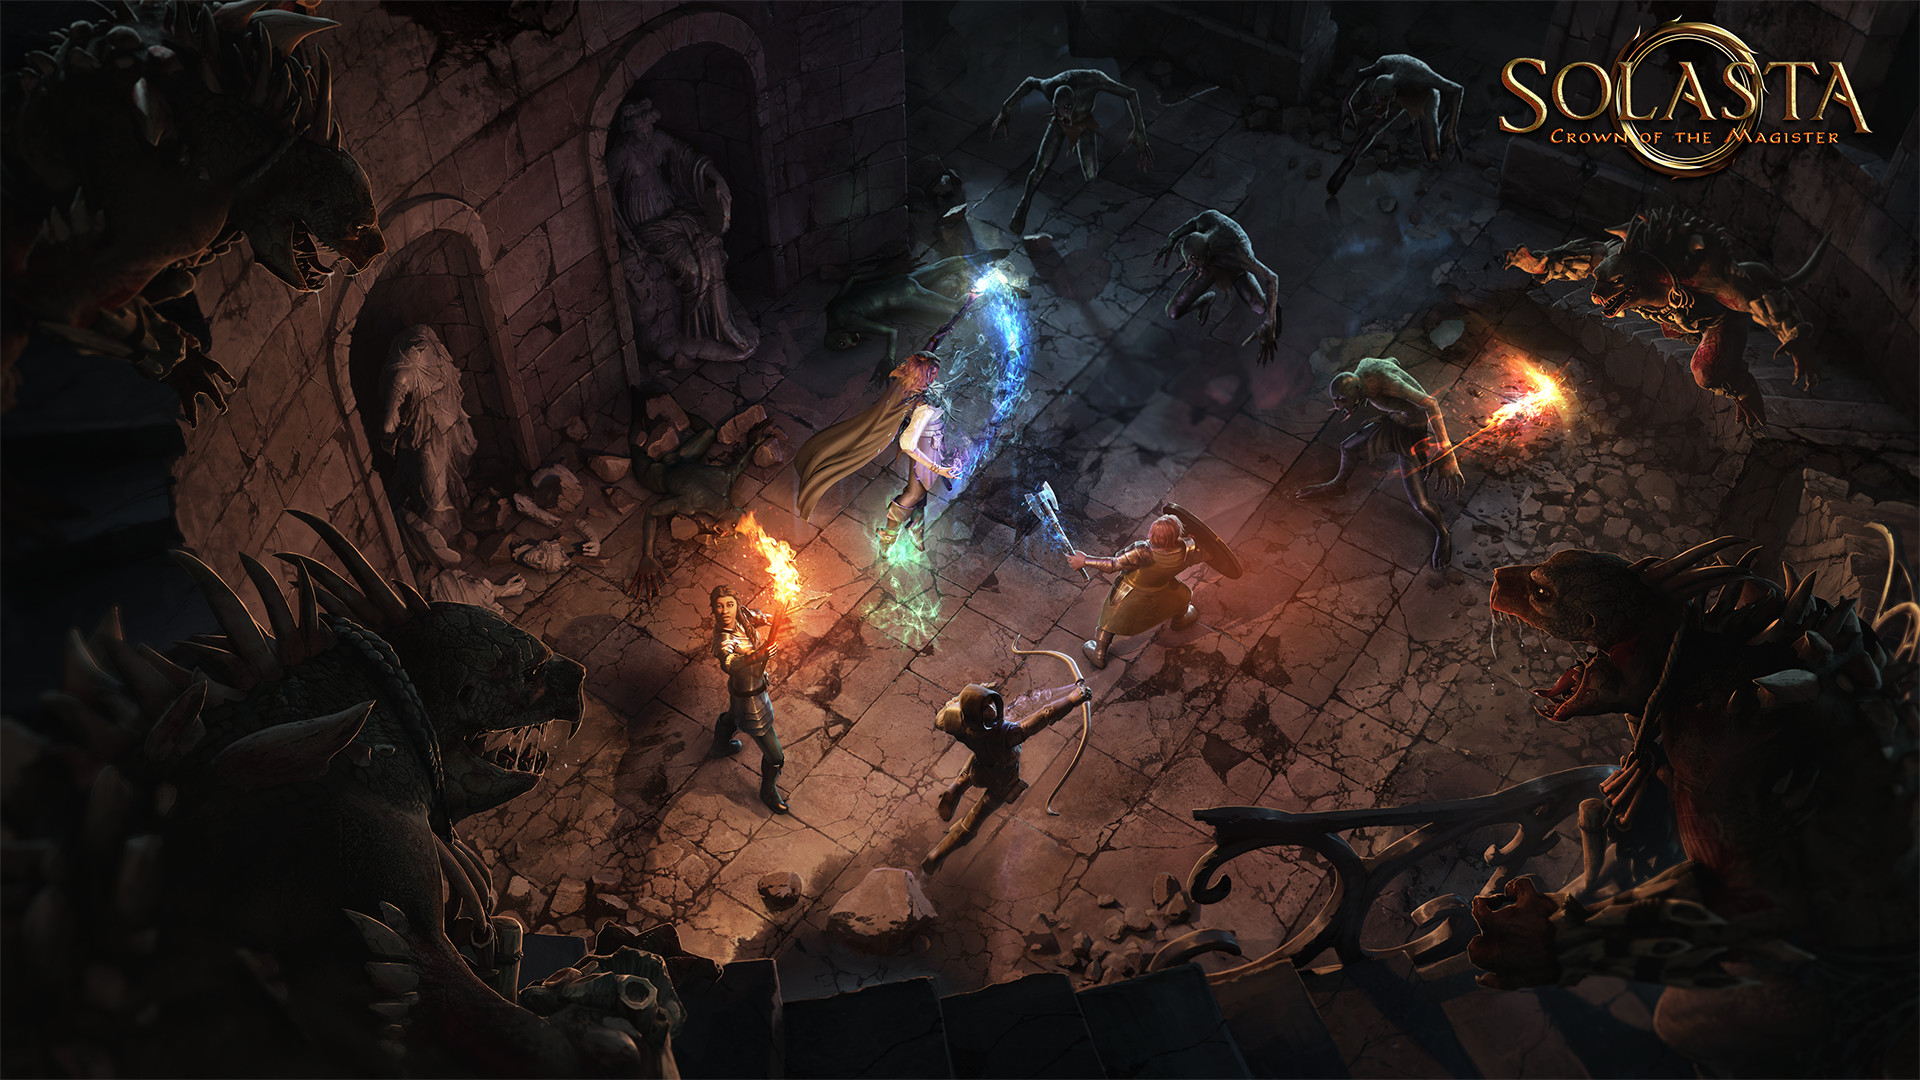 Download Solasta Crown of the Magister-CODEX in PC [ Torrent ]